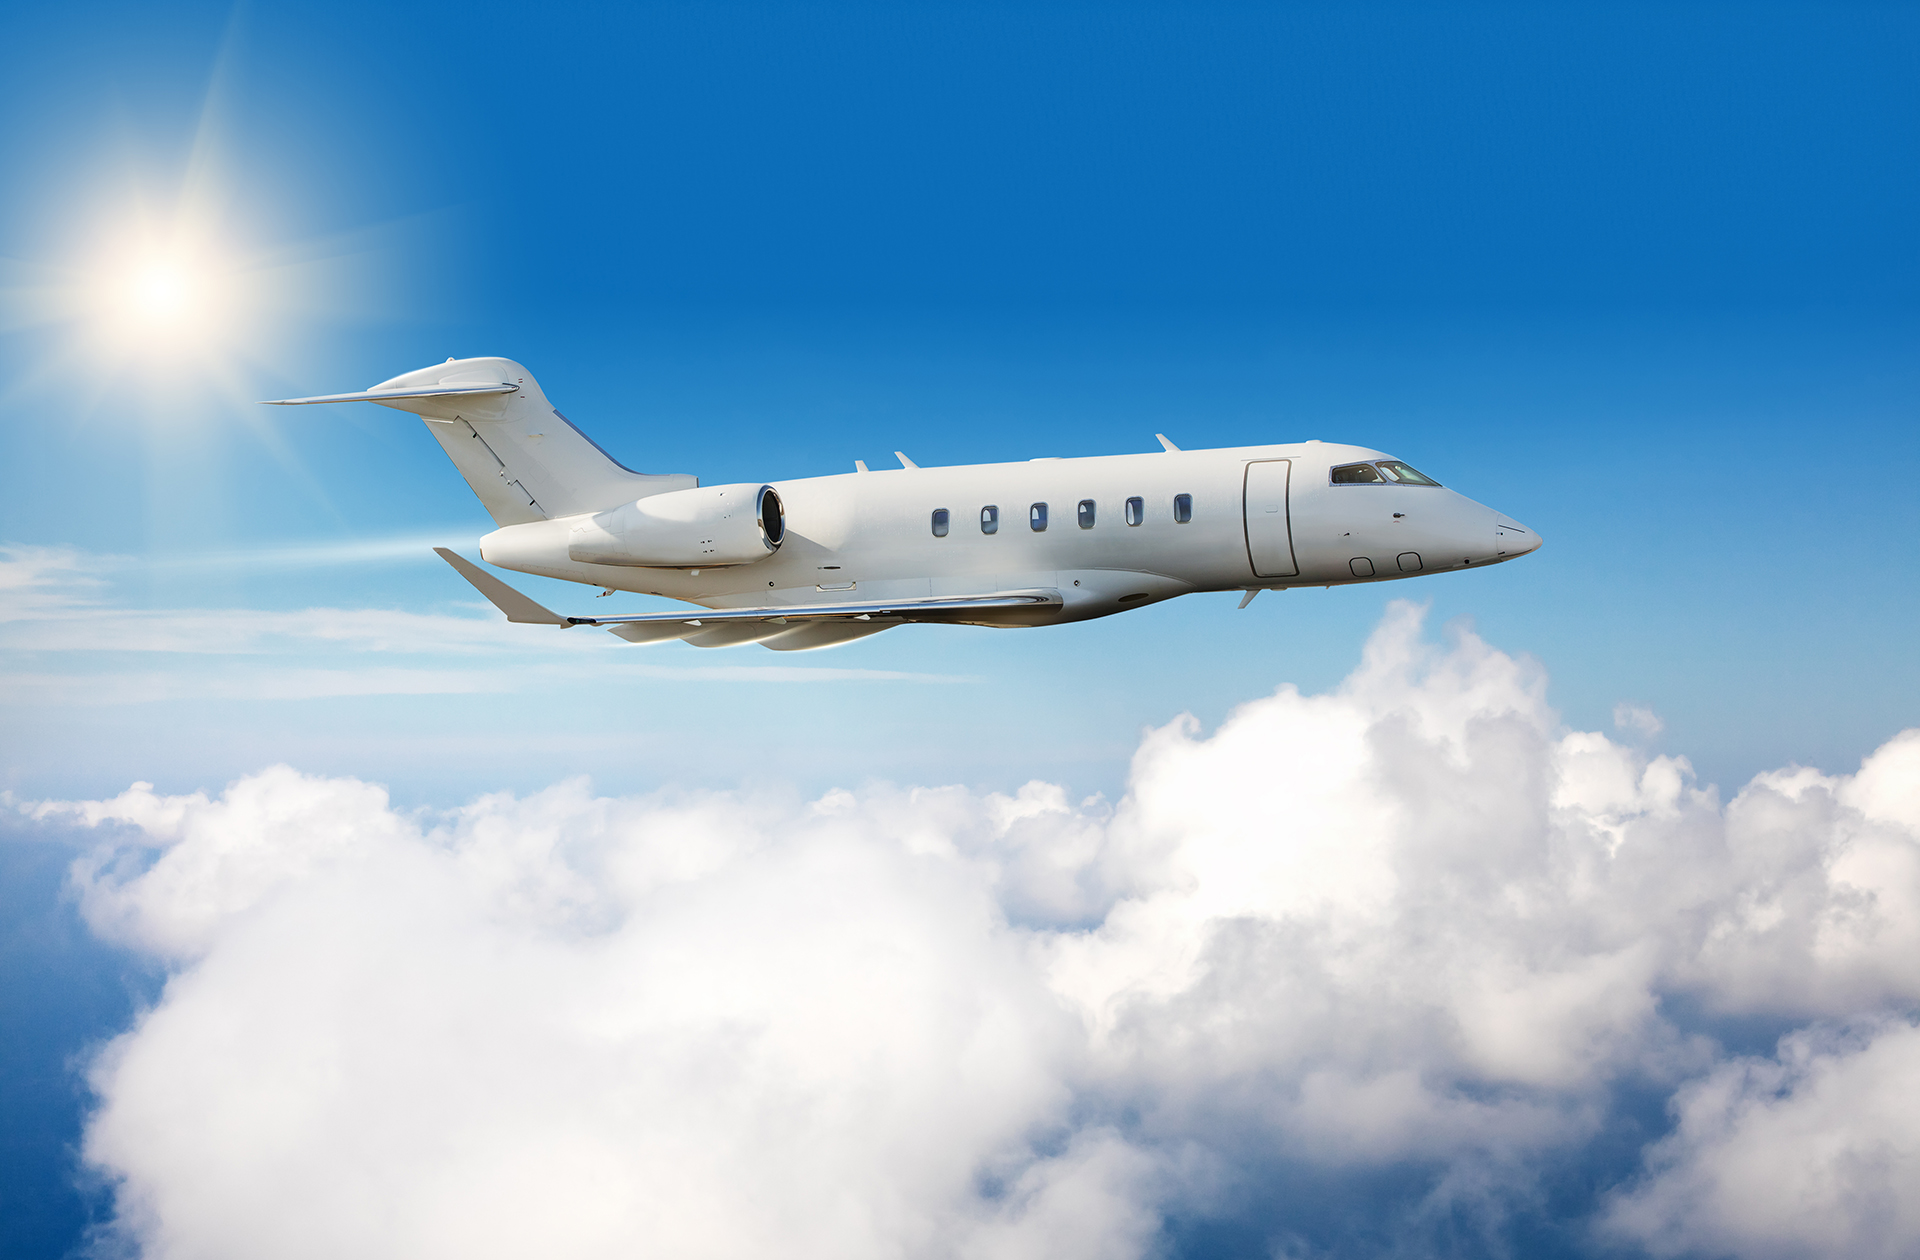 A Business Jet in Mid-Flight